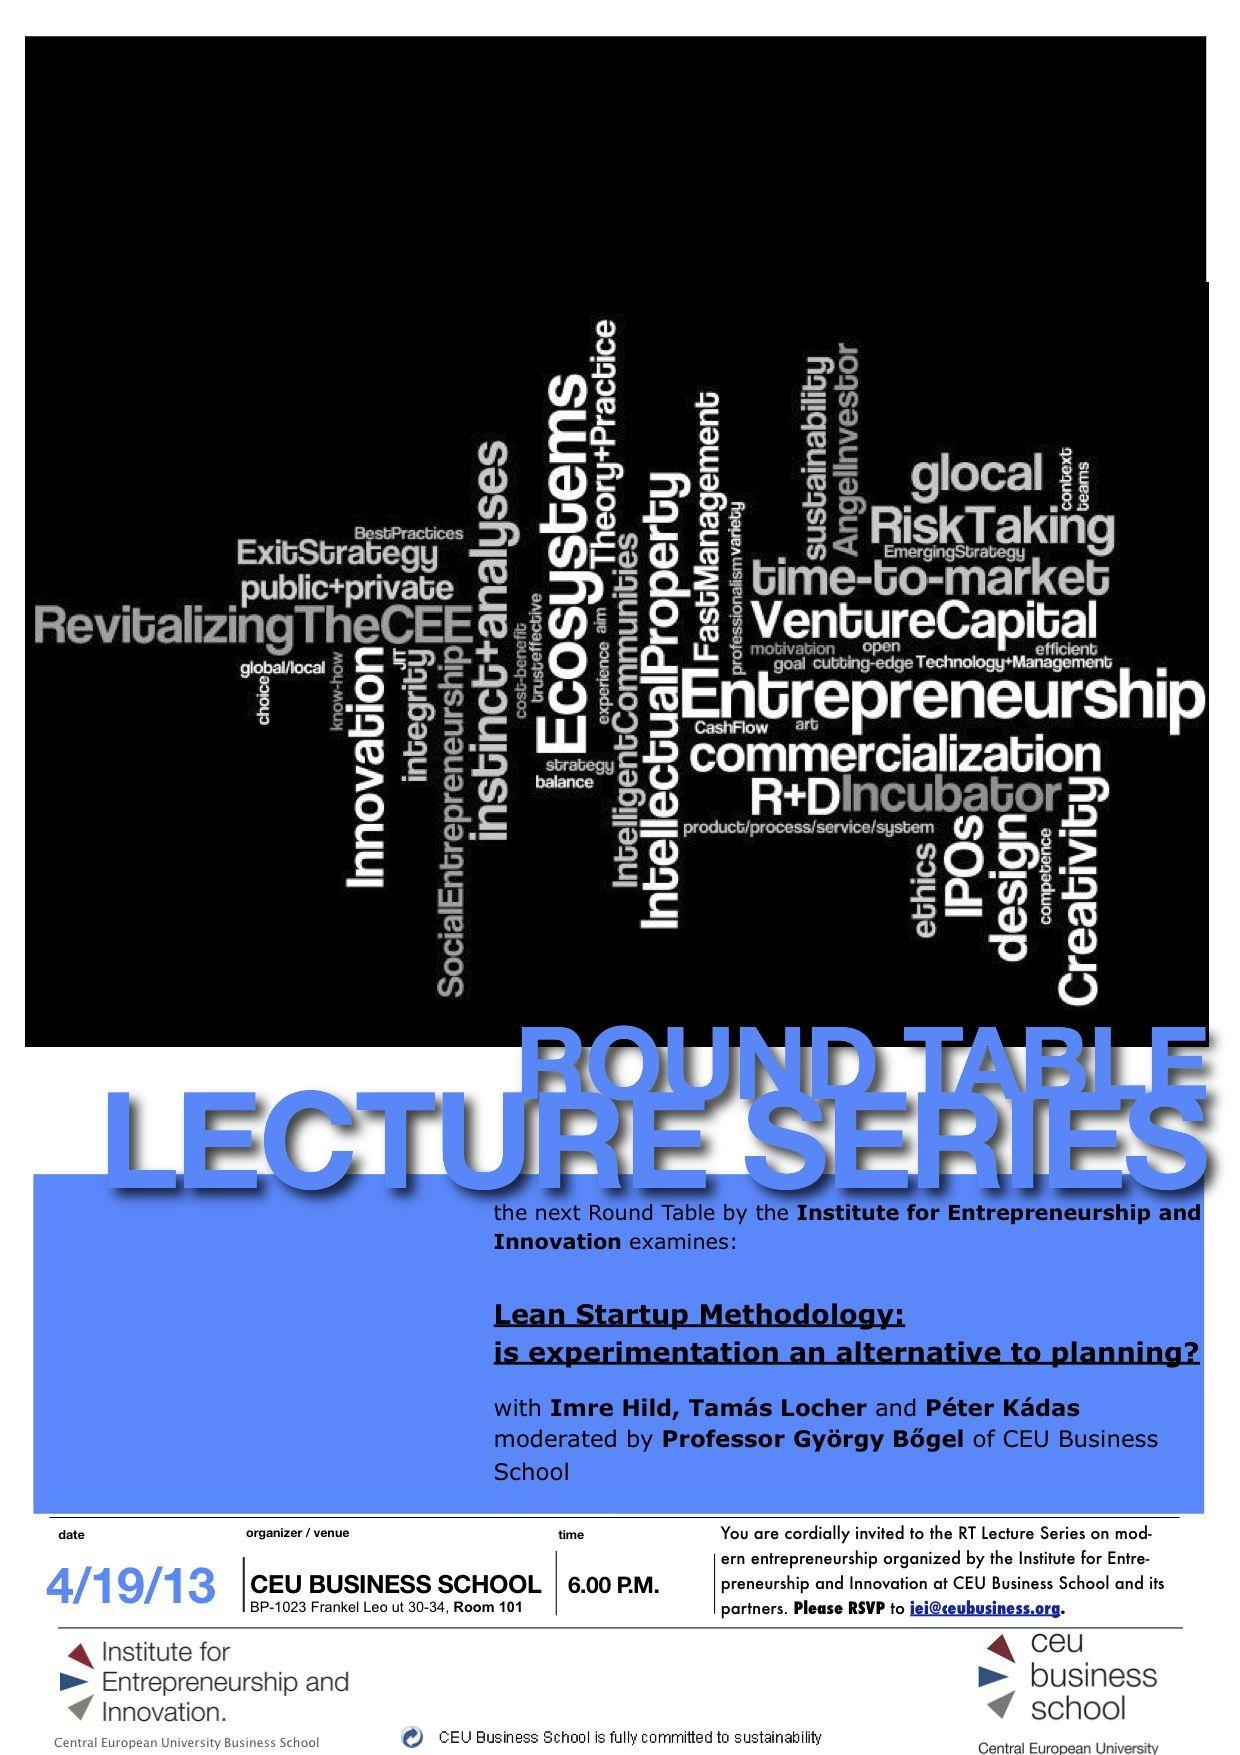 CEU Business School Budapest Event: Lean Startup Methodology On 19 April